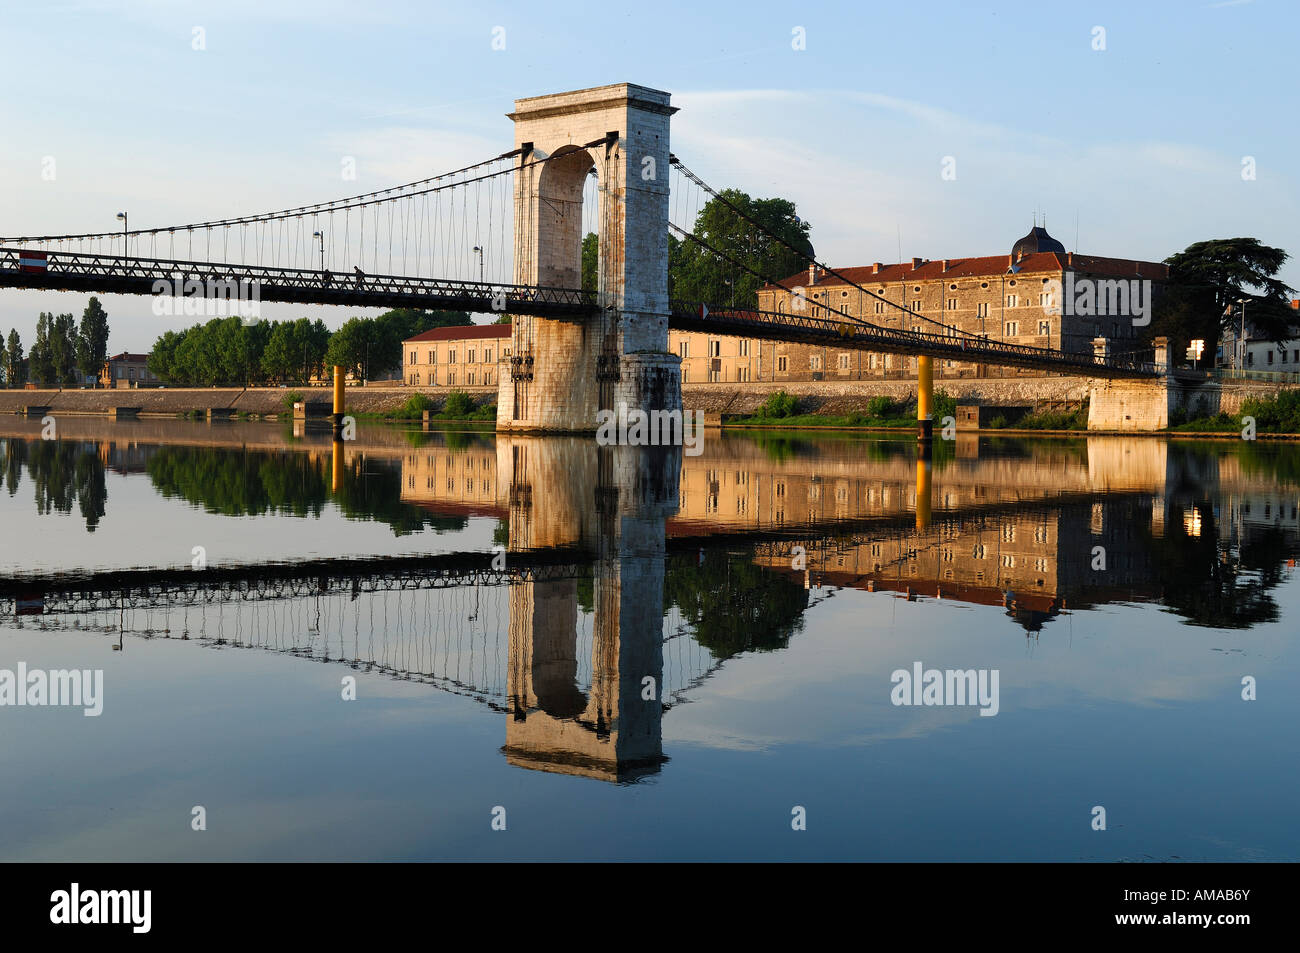 france ardeche rhone valley tournon sur rhone suspension bridge stock photo royalty free. Black Bedroom Furniture Sets. Home Design Ideas